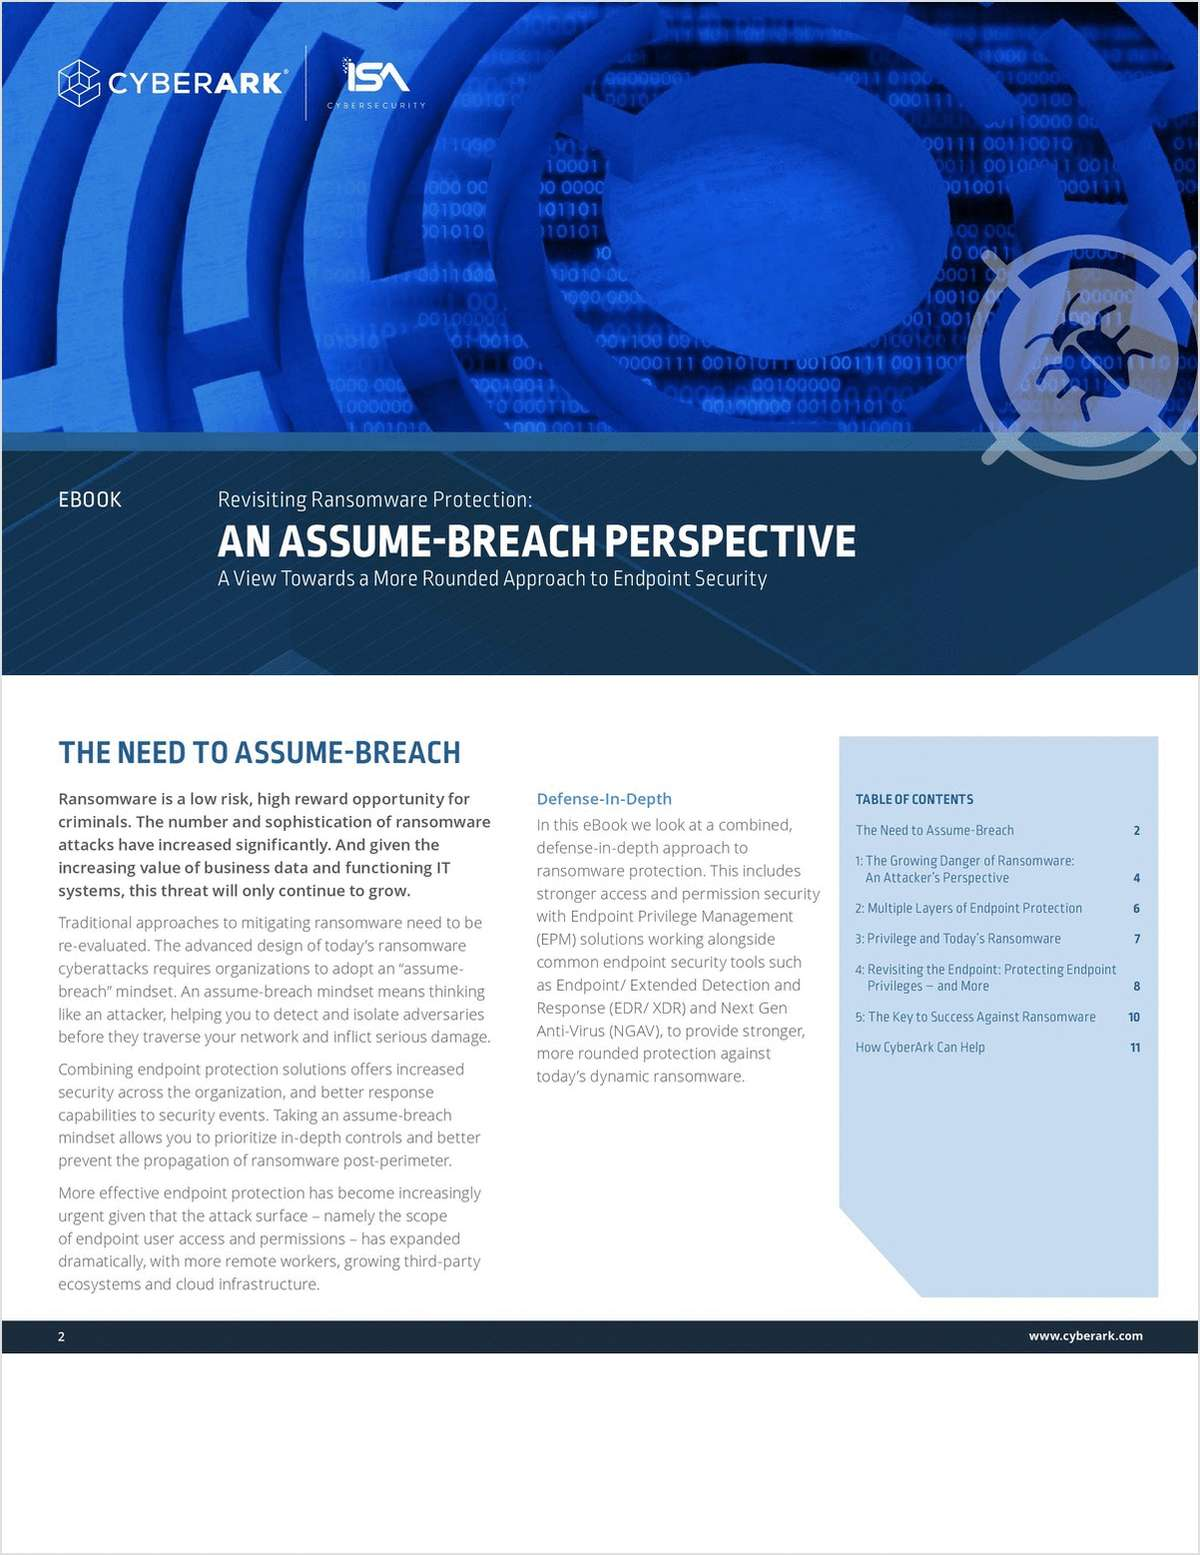 Revisiting Ransomware Protection: An Assume-Breach Perspective